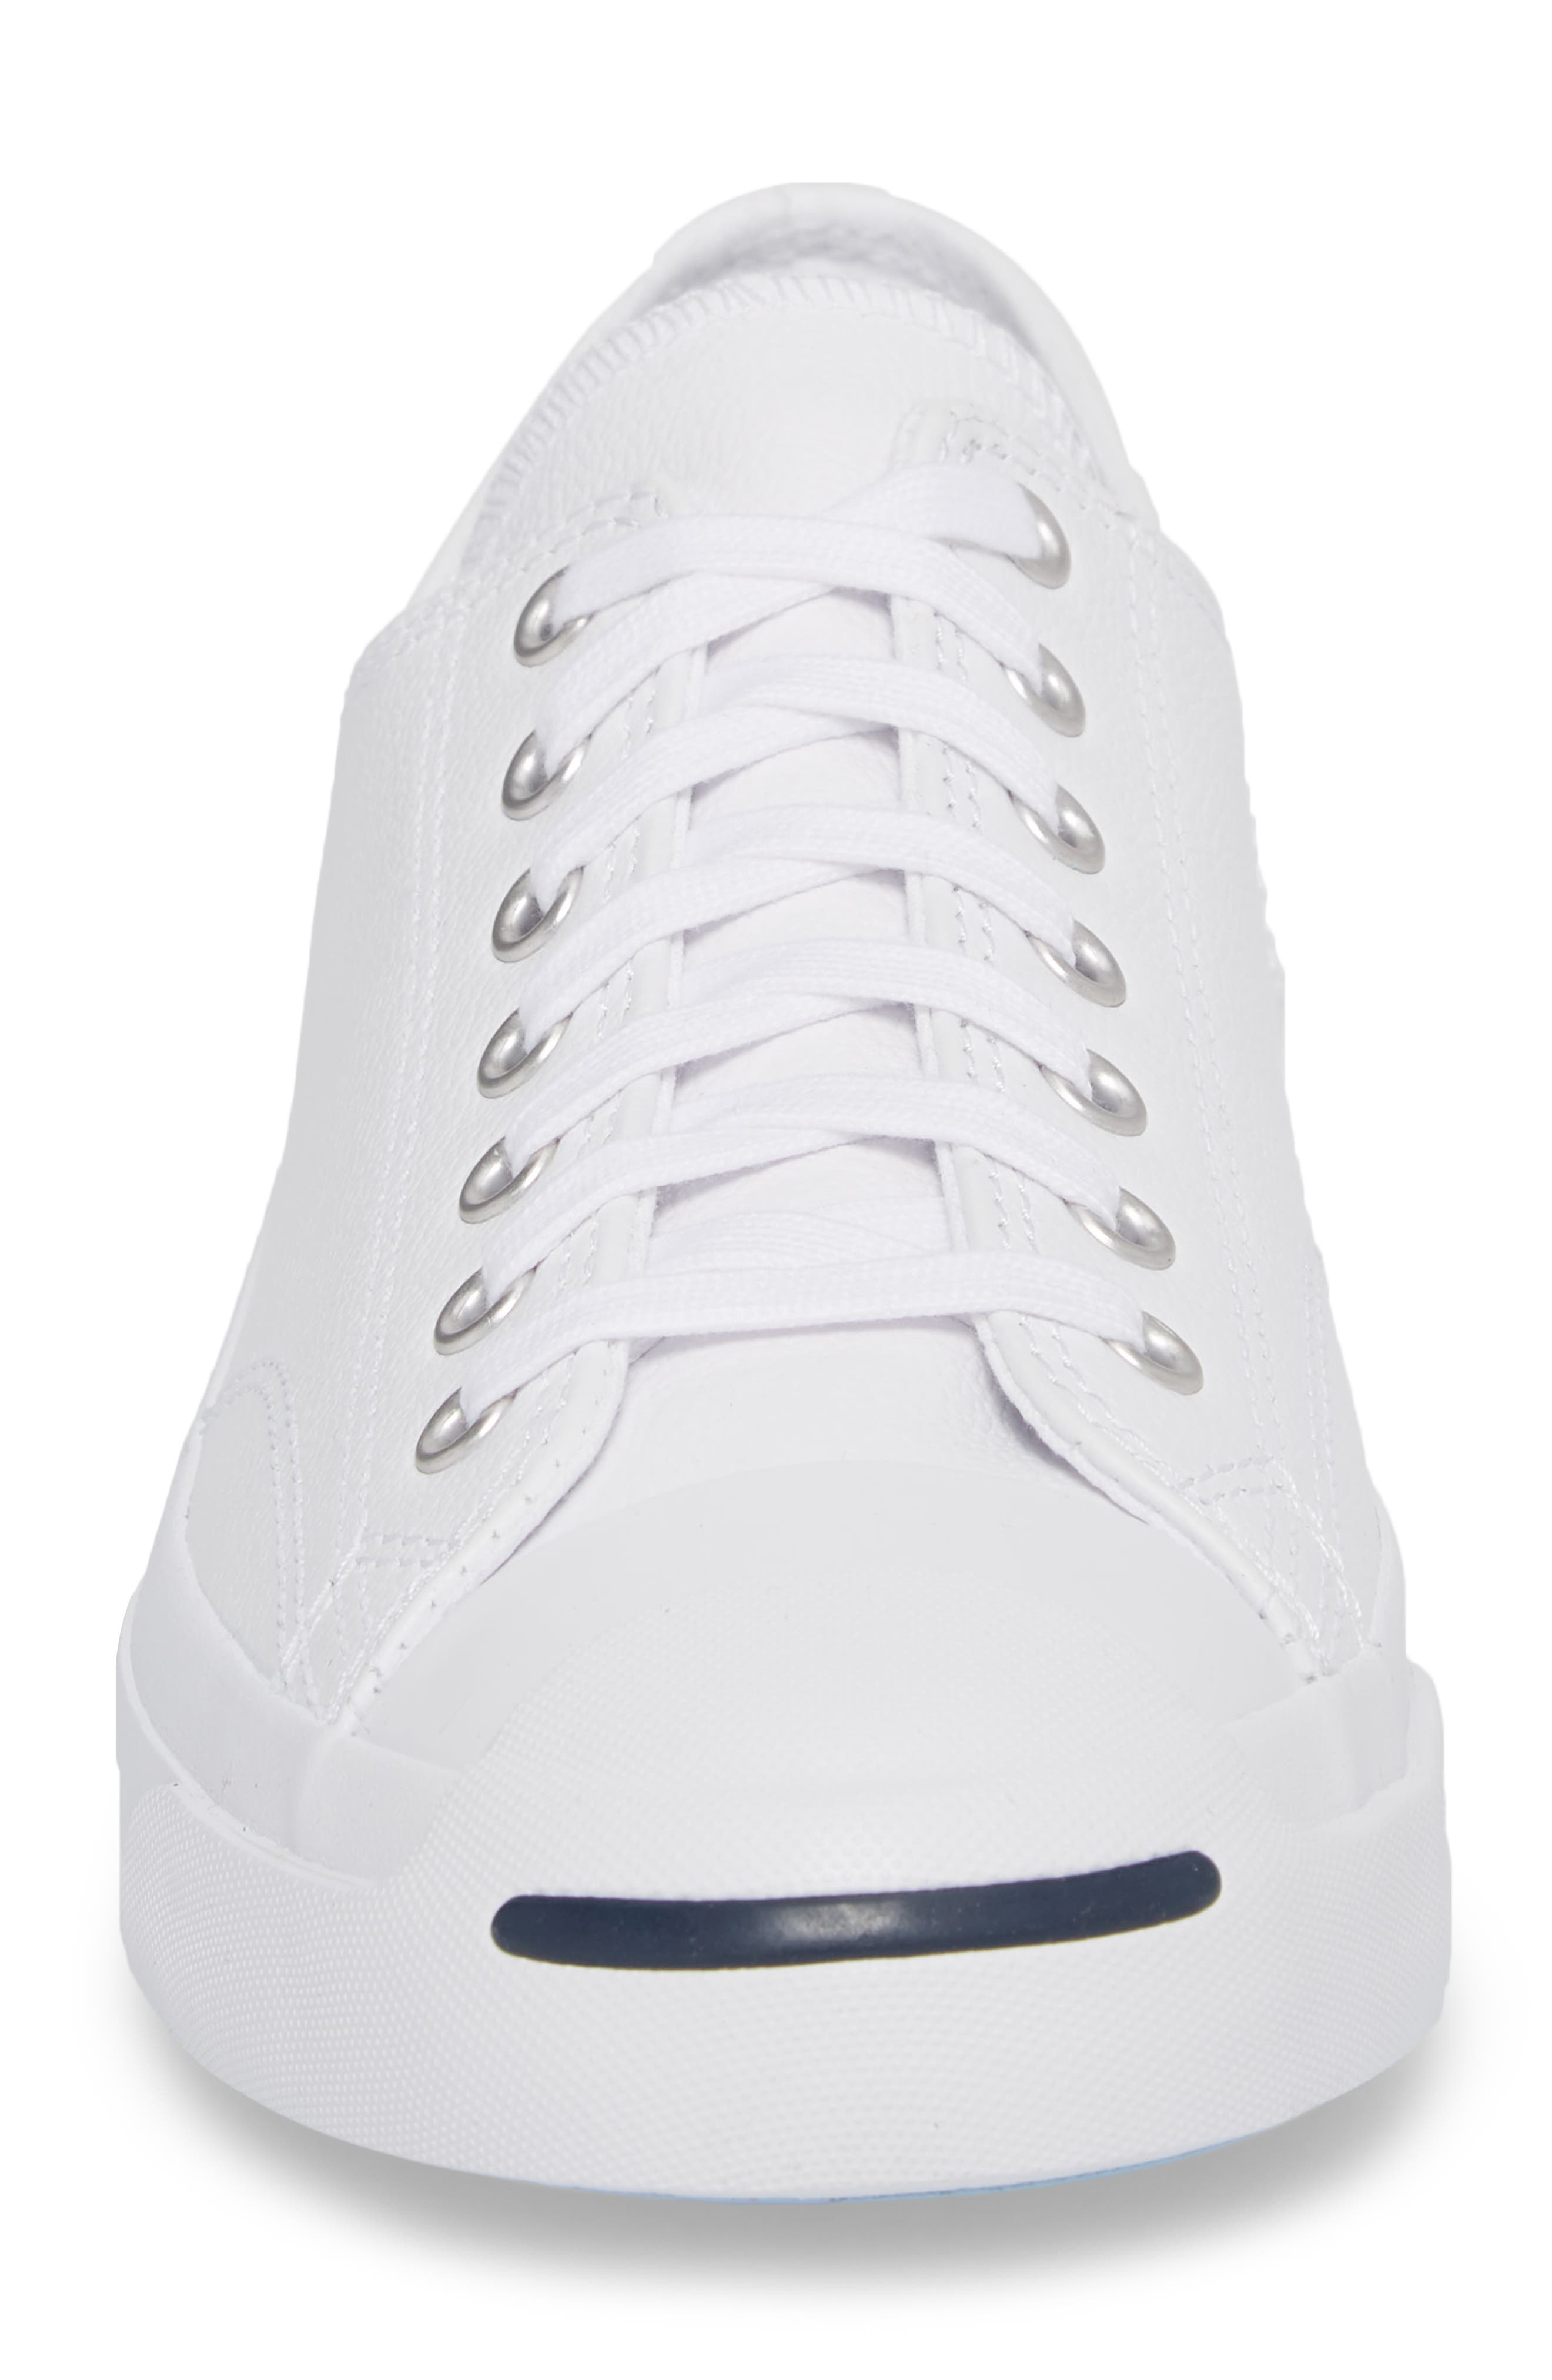 'Jack Purcell' Leather Sneaker,                             Alternate thumbnail 4, color,                             White/ Navy